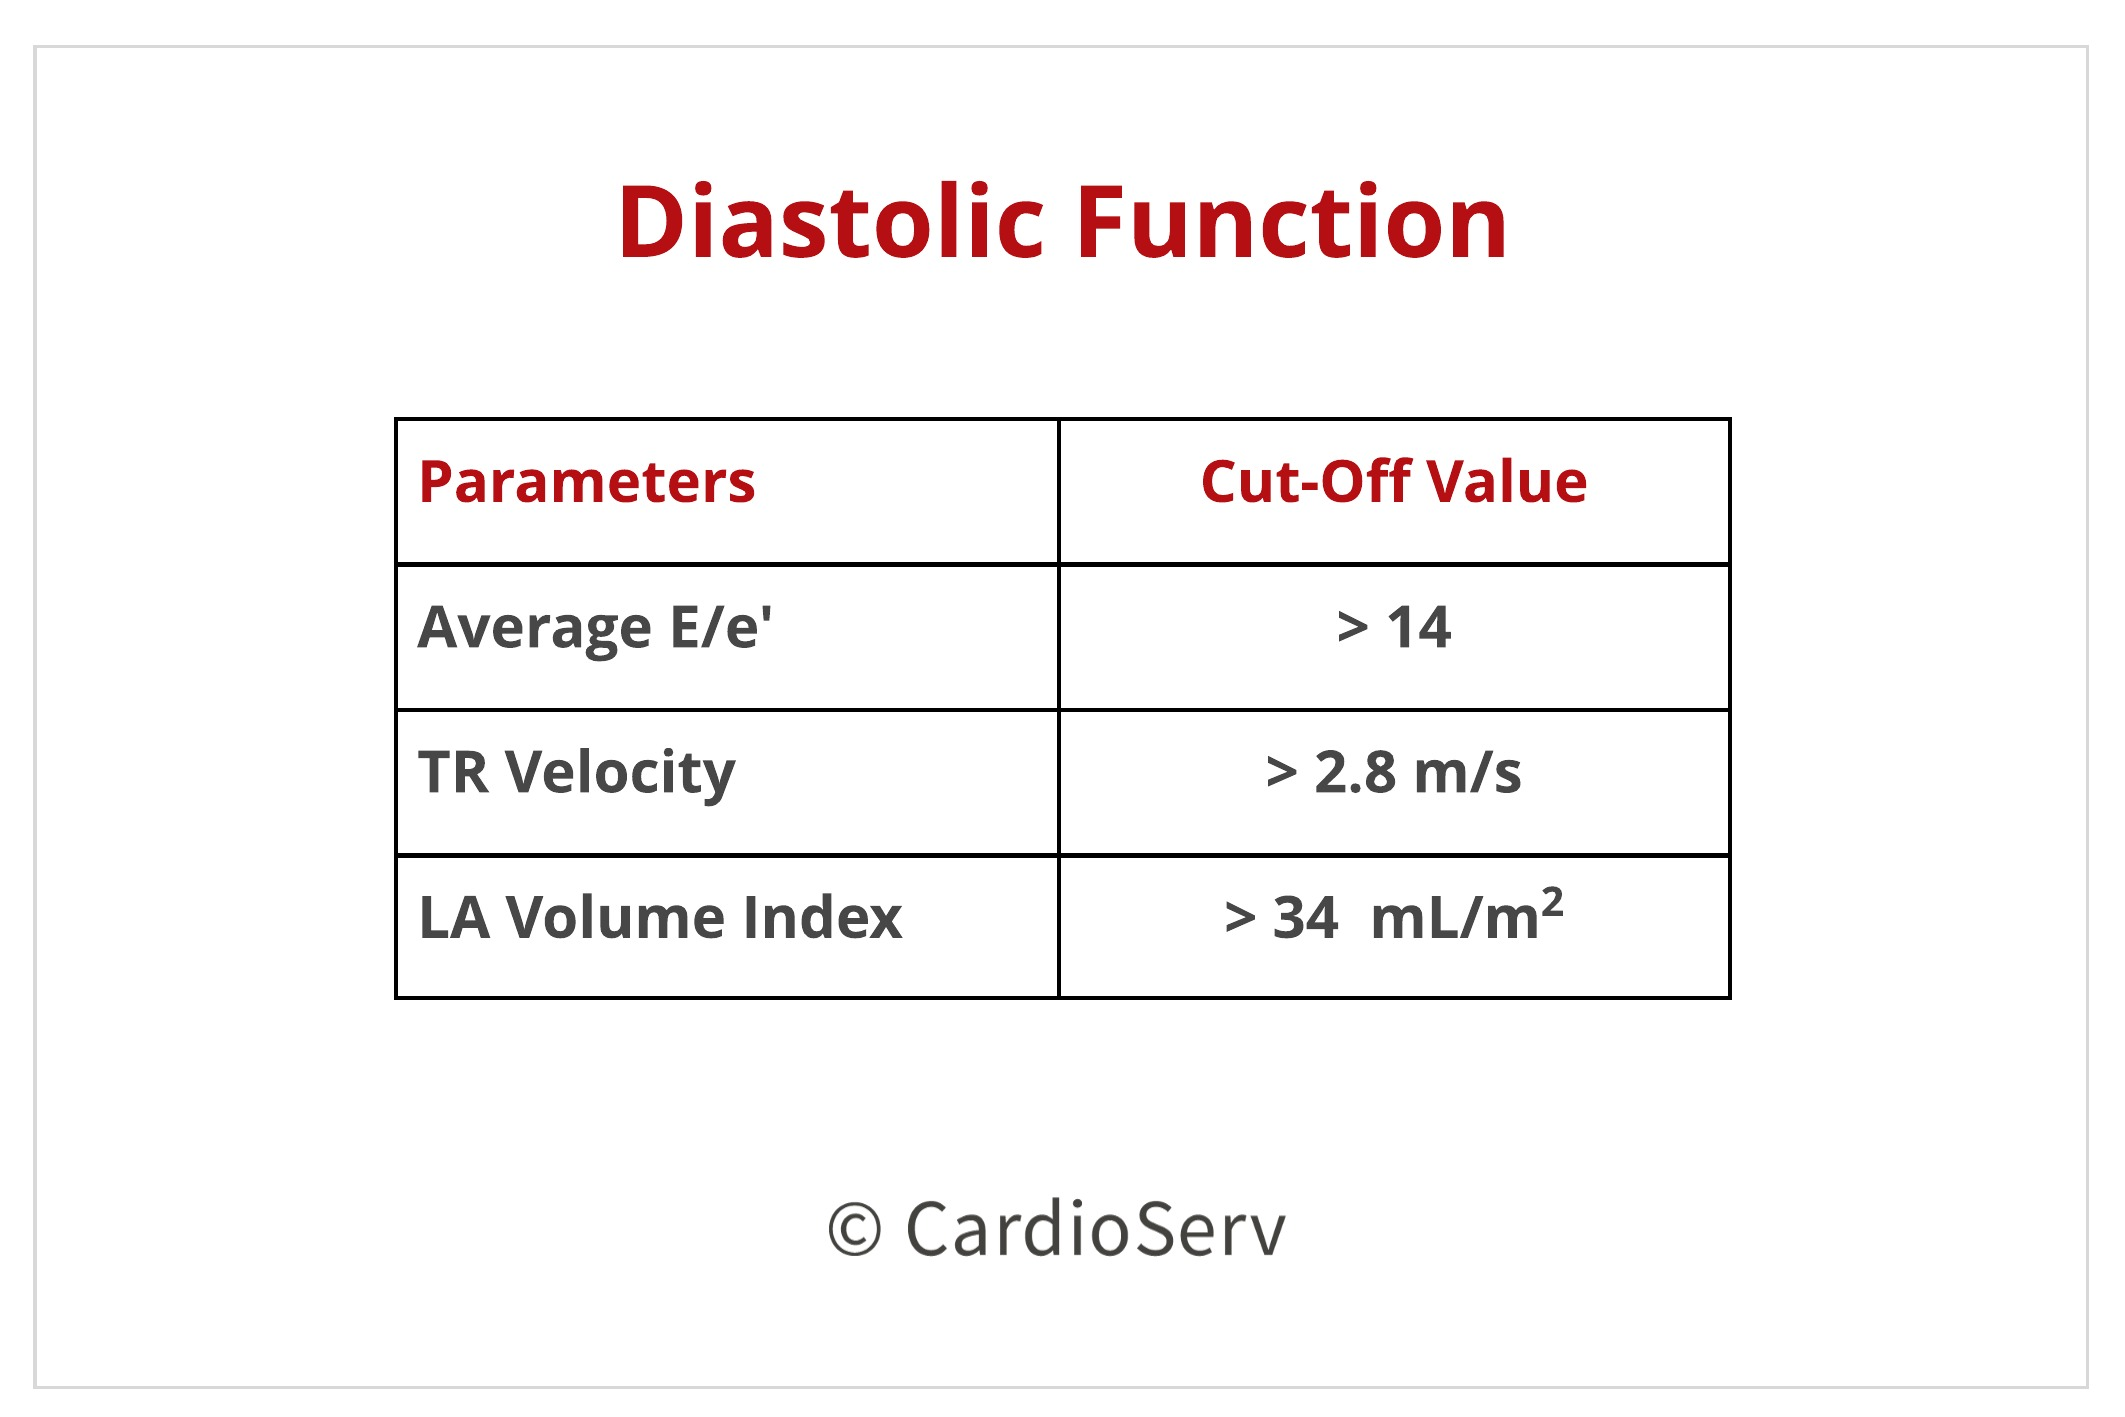 Diastolic Function Parameters